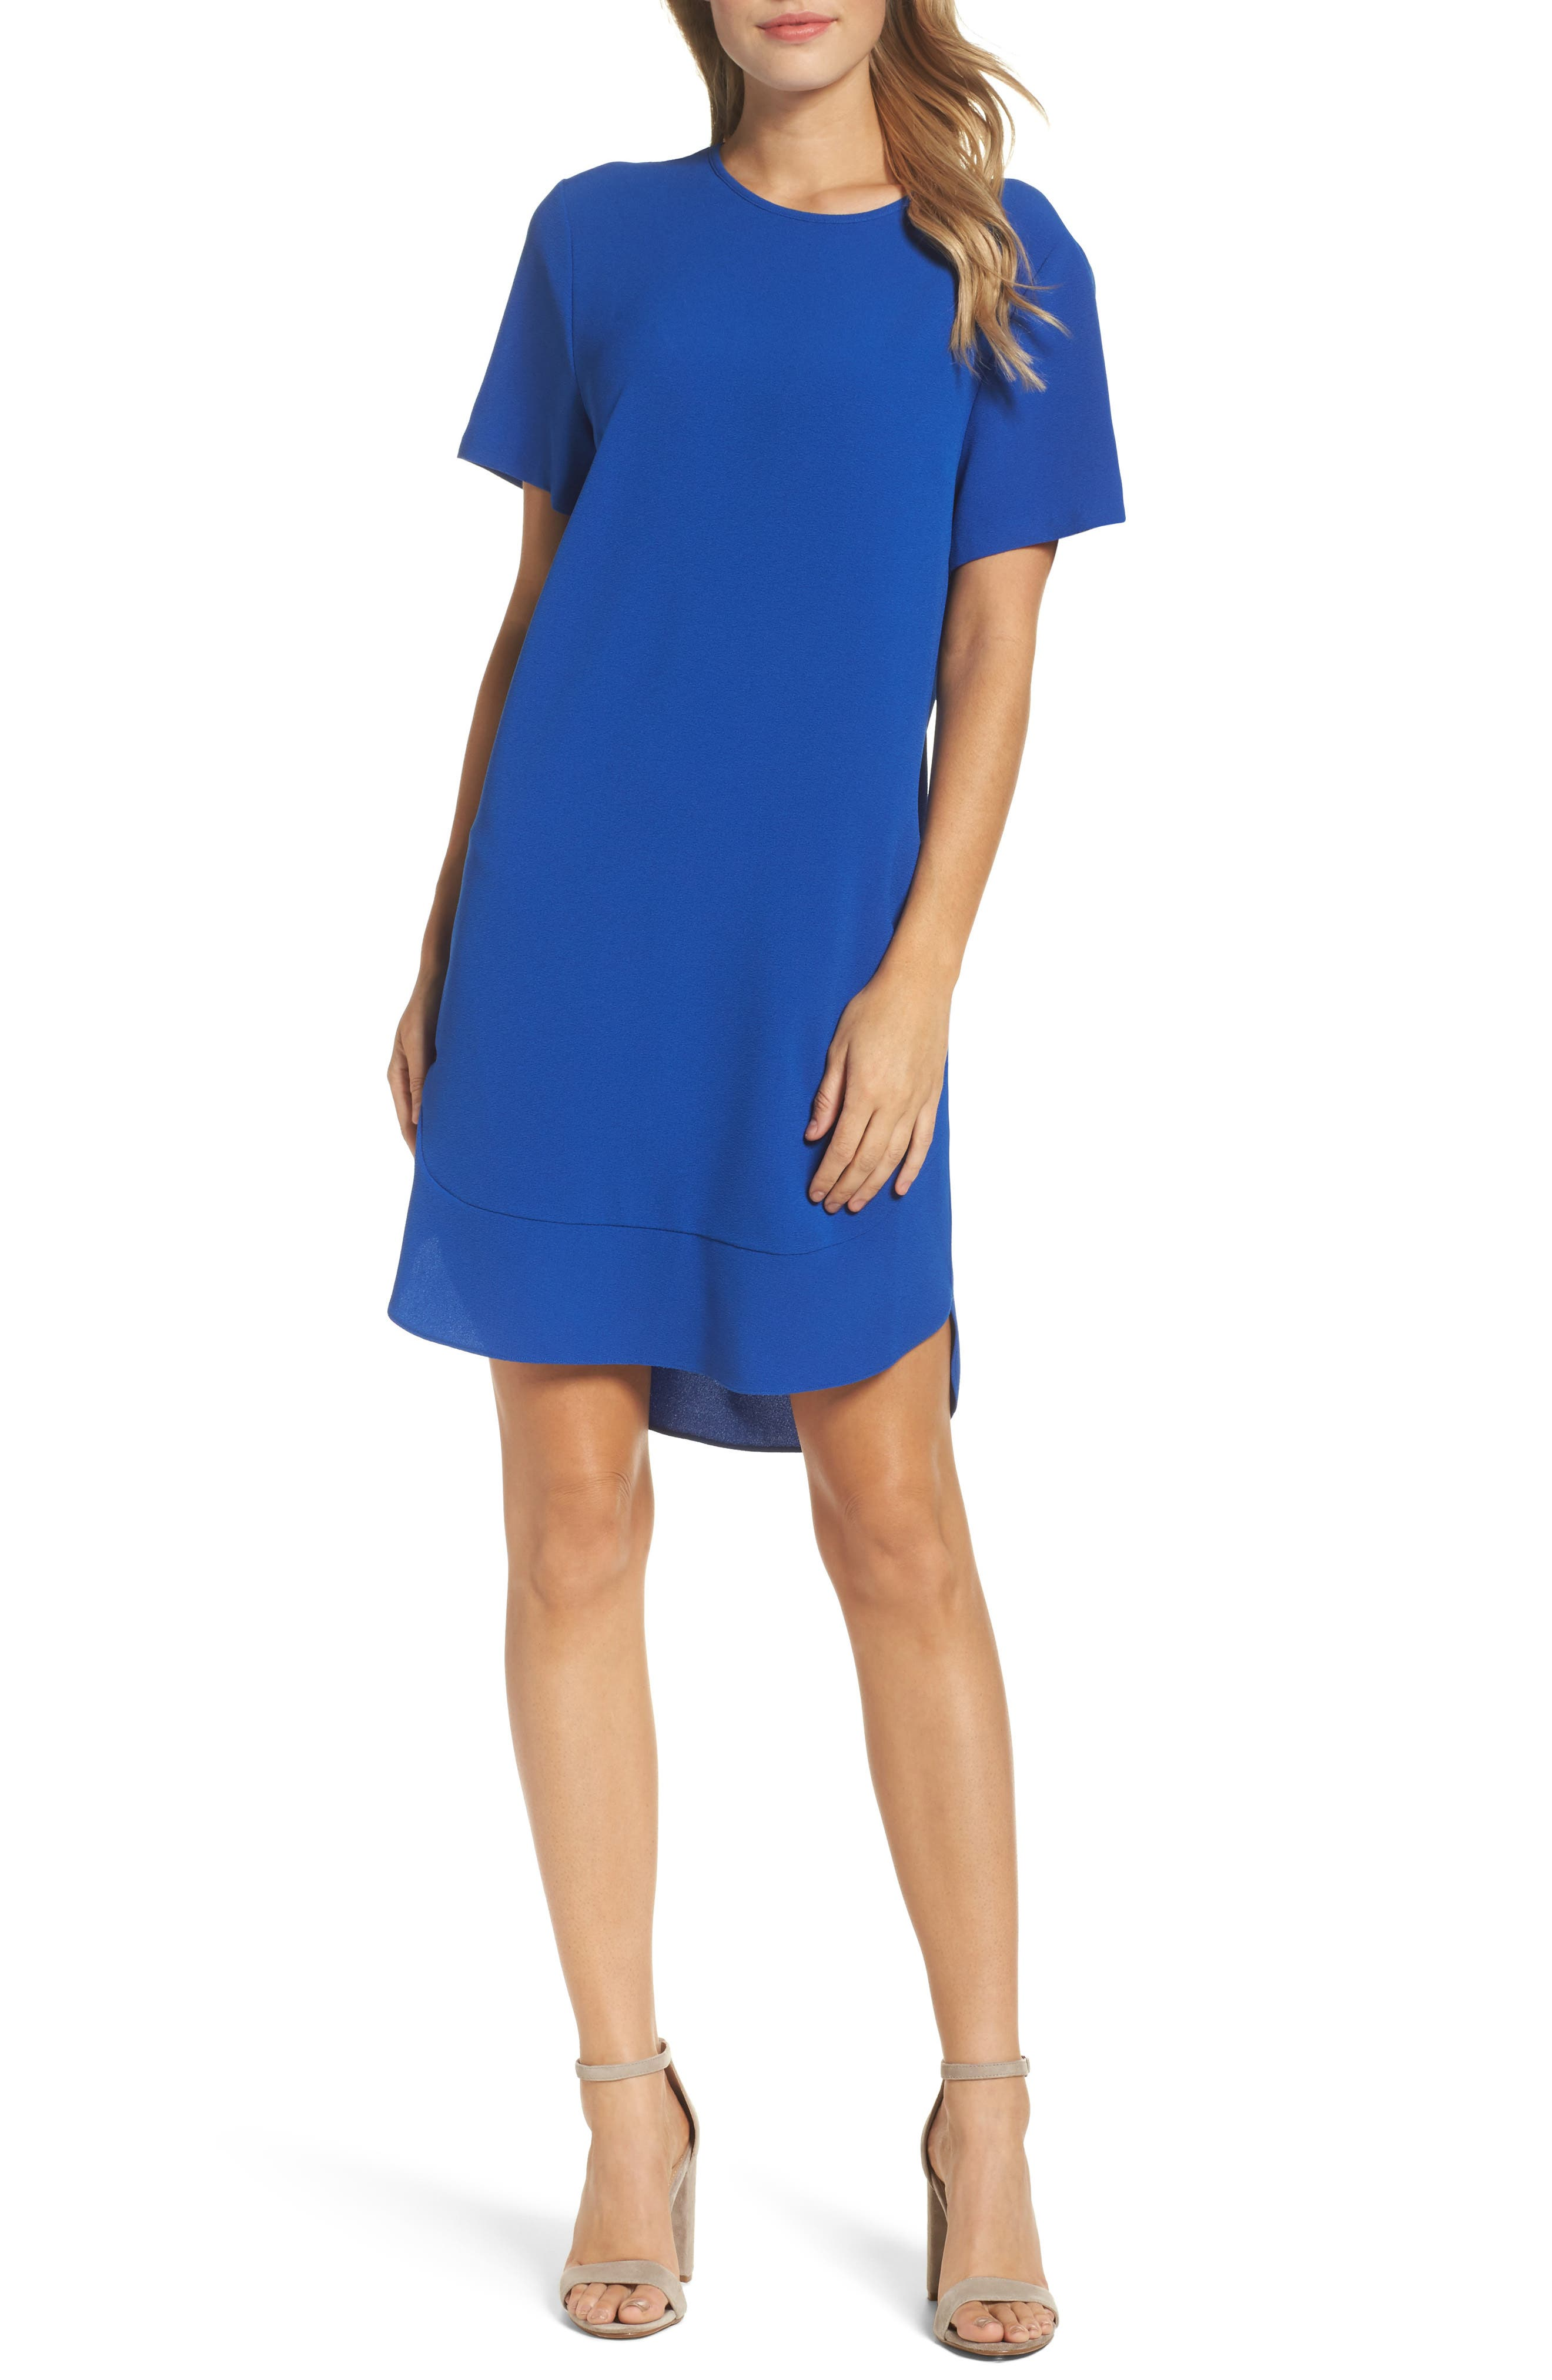 Felicity & Coco Emerson Shift Dress (Nordstrom Exclusive)